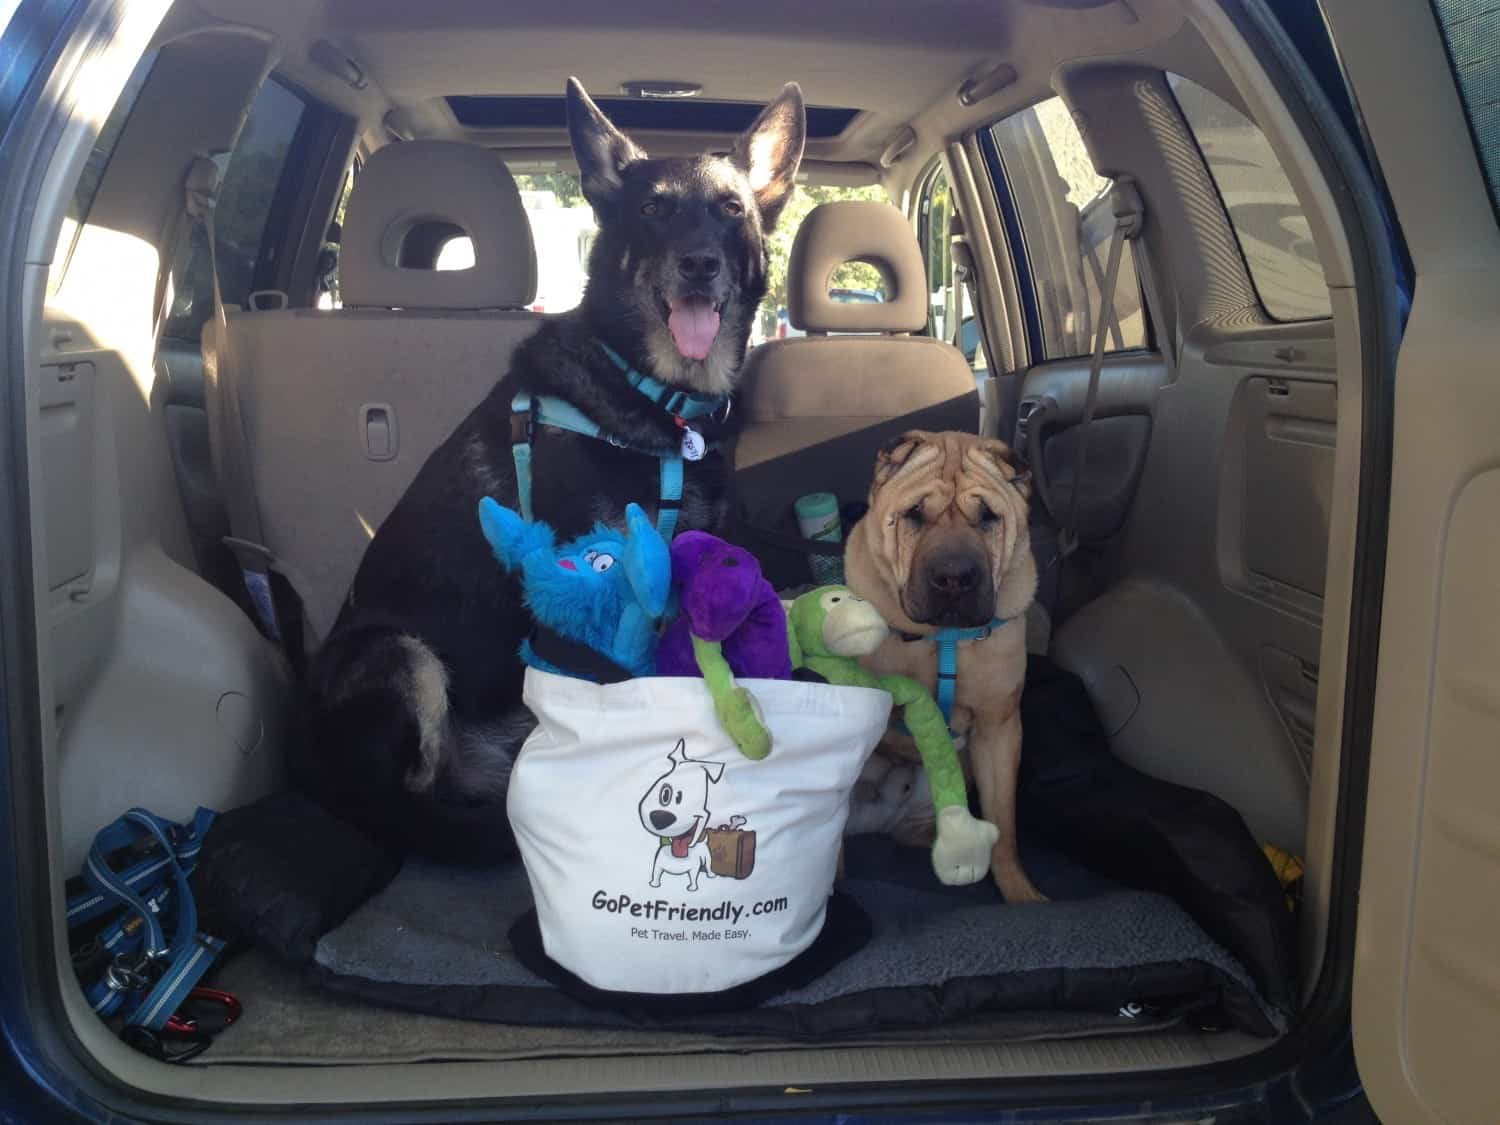 Buster and Ty - GoPetFriendly.com - Dogs packing for a trip